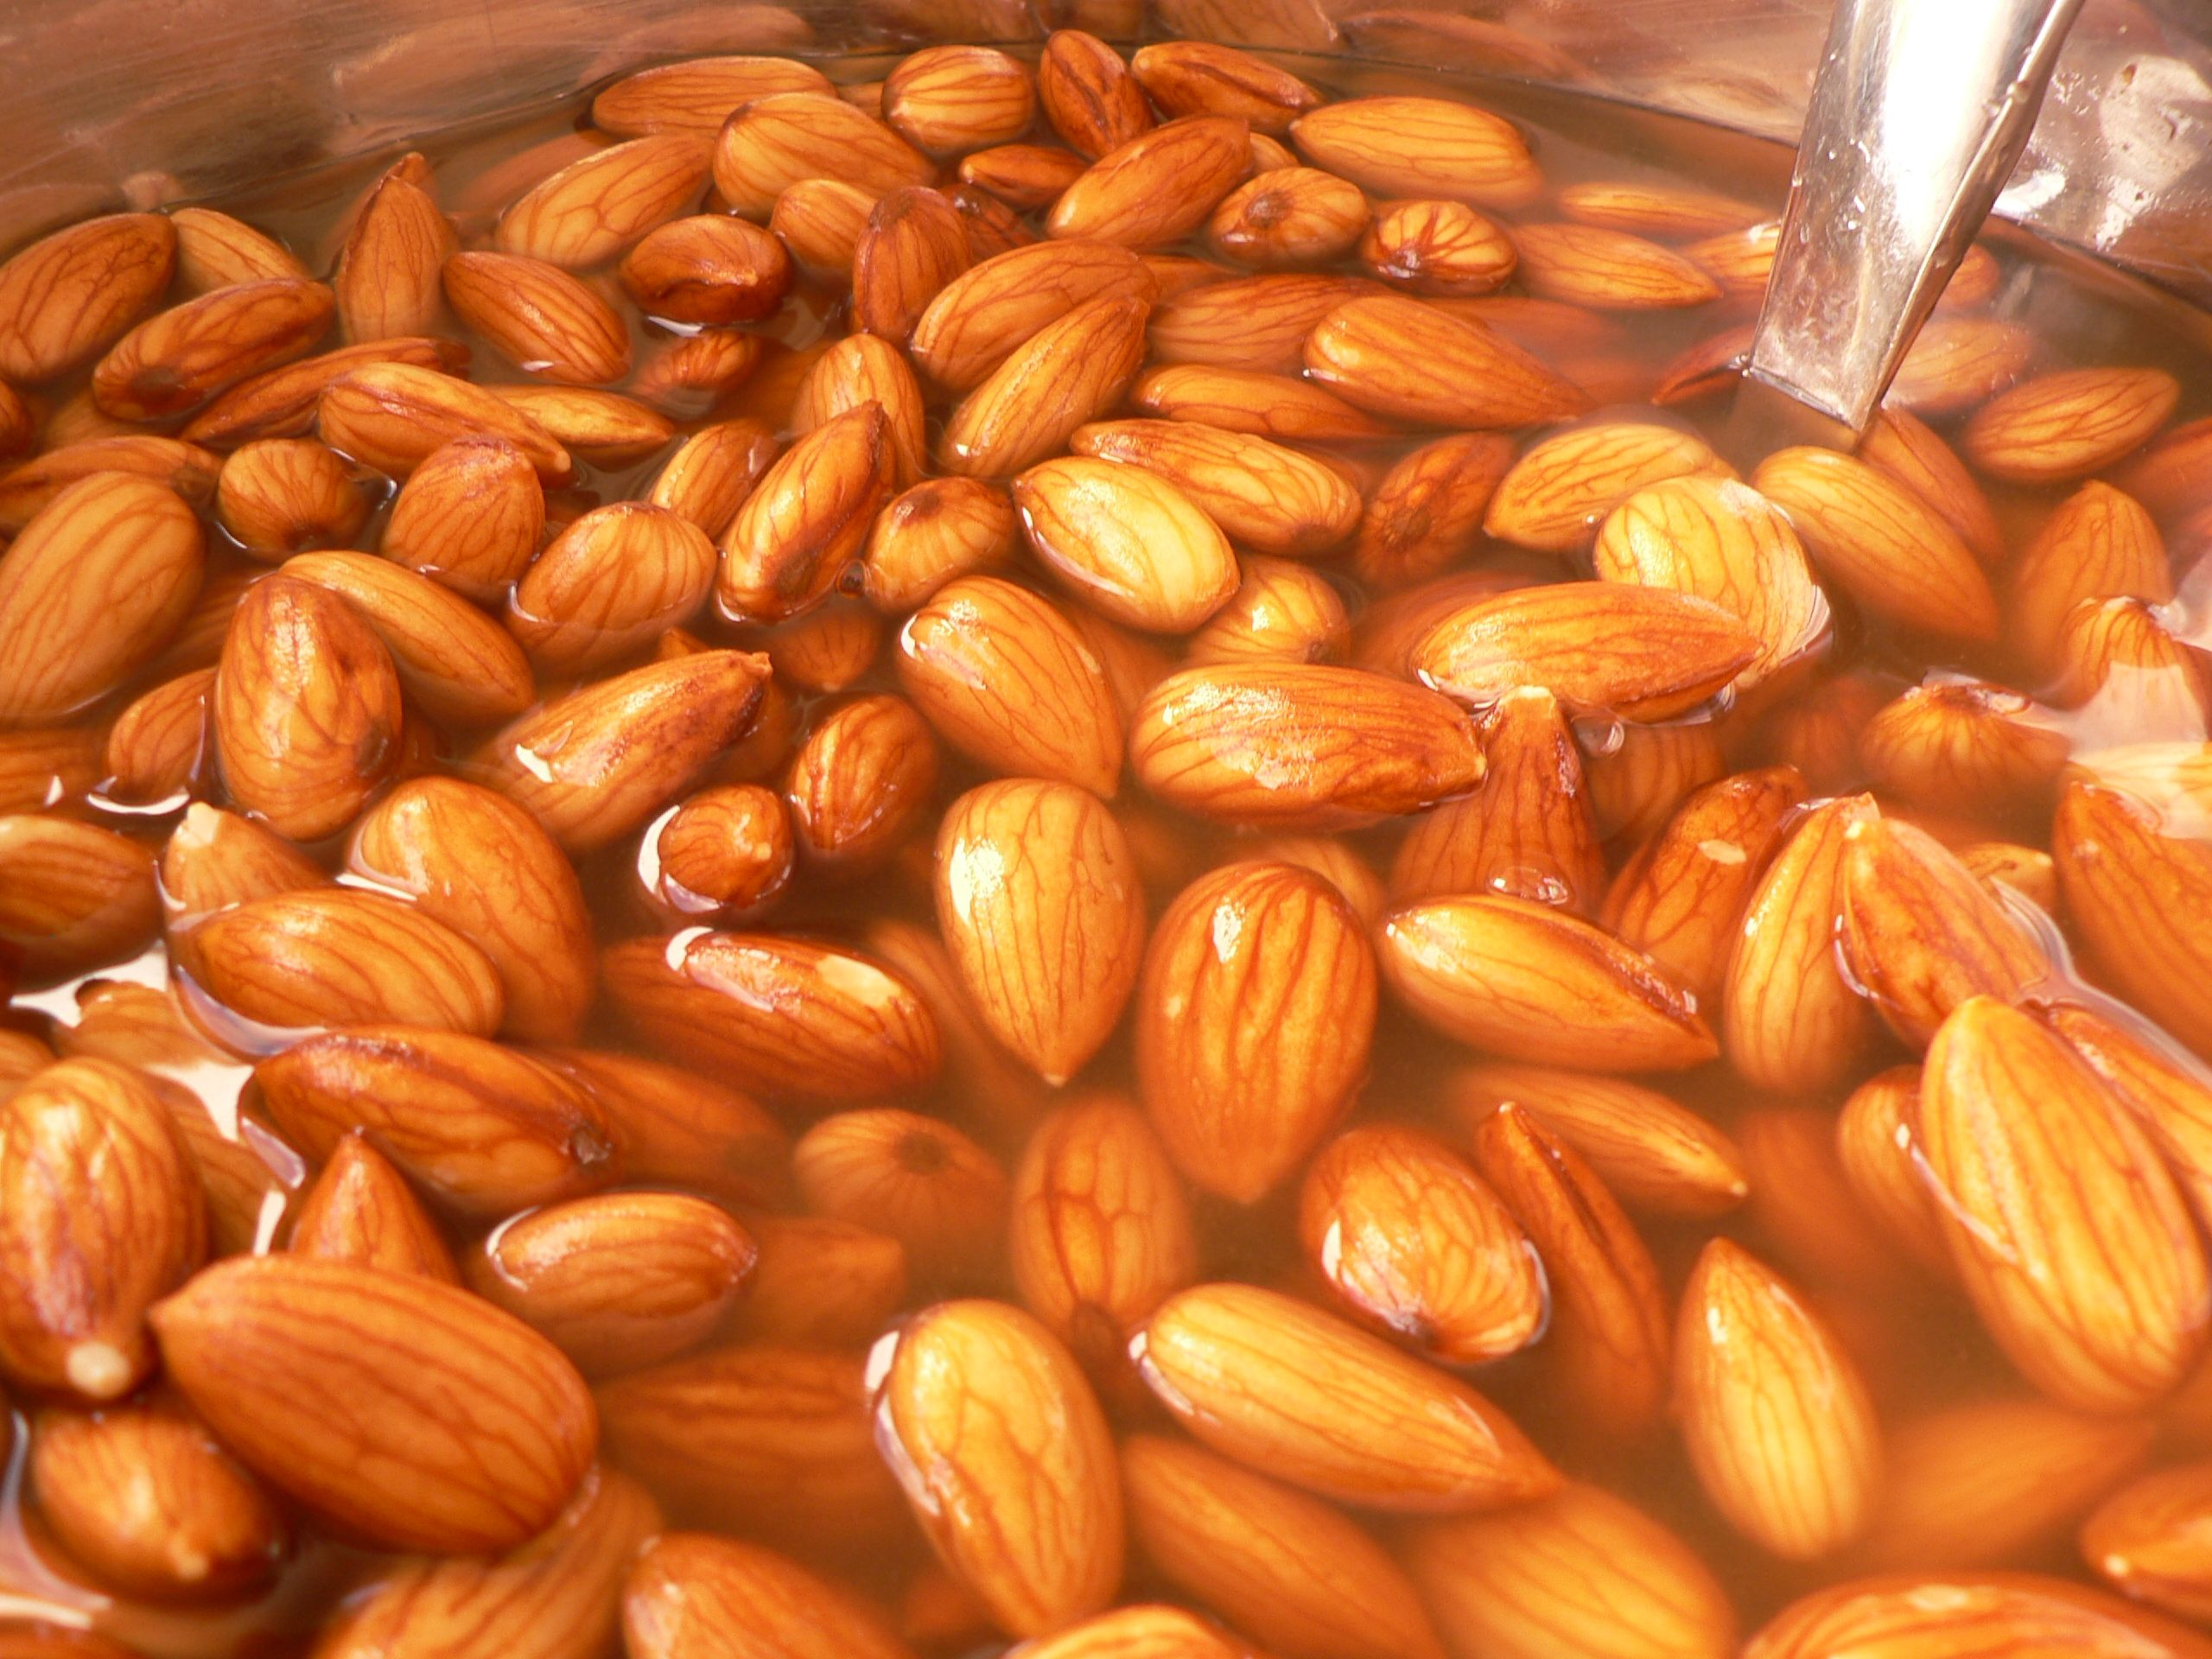 Raw Food 101 Why You Should Always Soak Almonds Soaked Almonds Raw Food Recipes Food 101